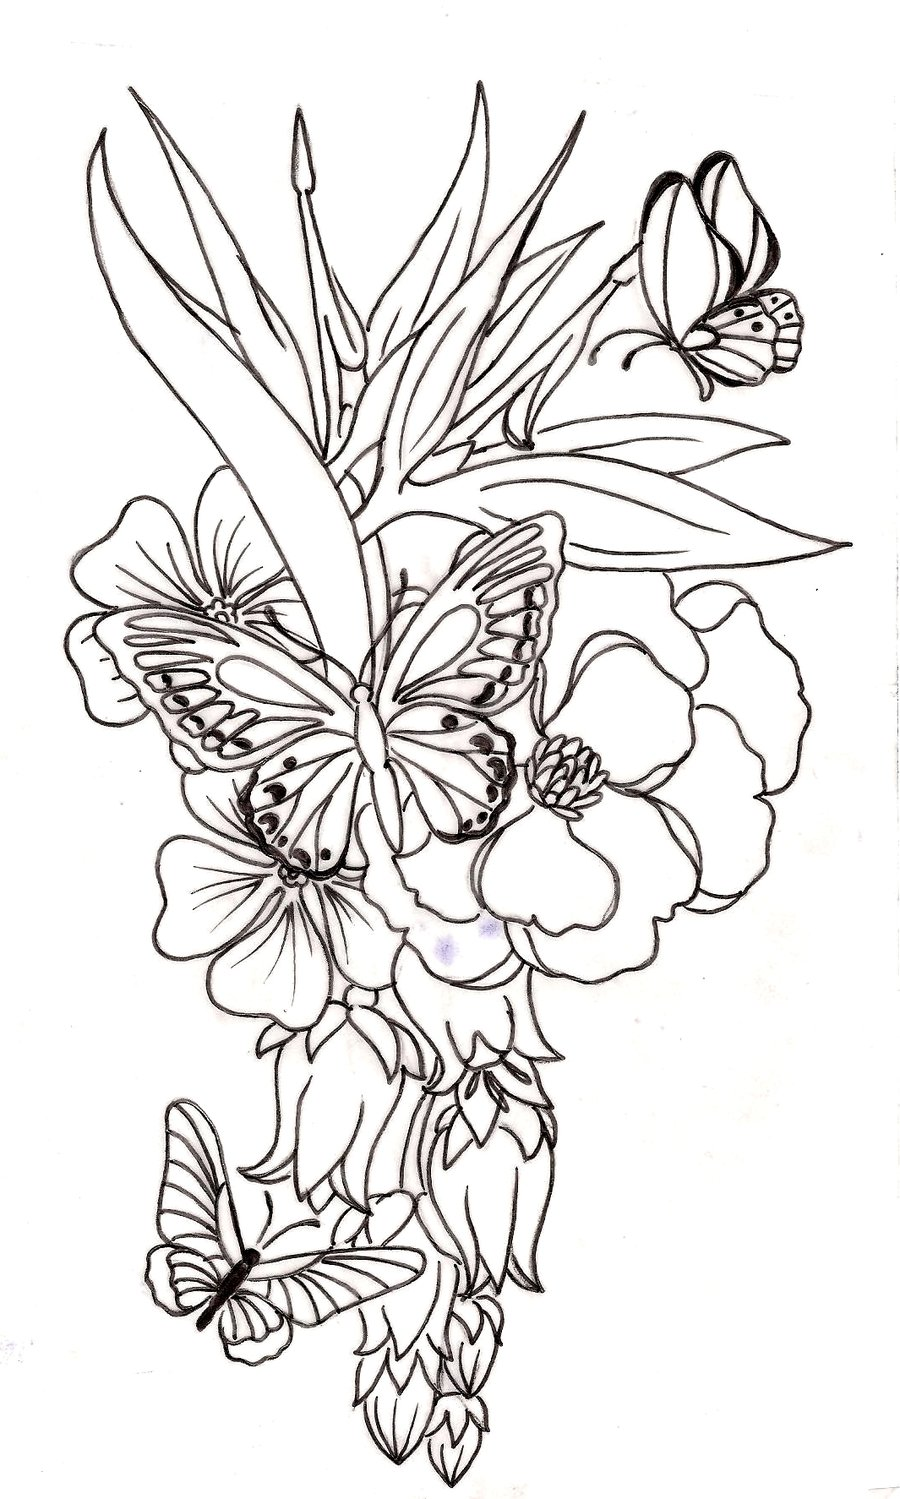 Daisy flowers drawing at getdrawings free for personal use 900x1499 collection of daisy flowers n butterfly tattoo design izmirmasajfo